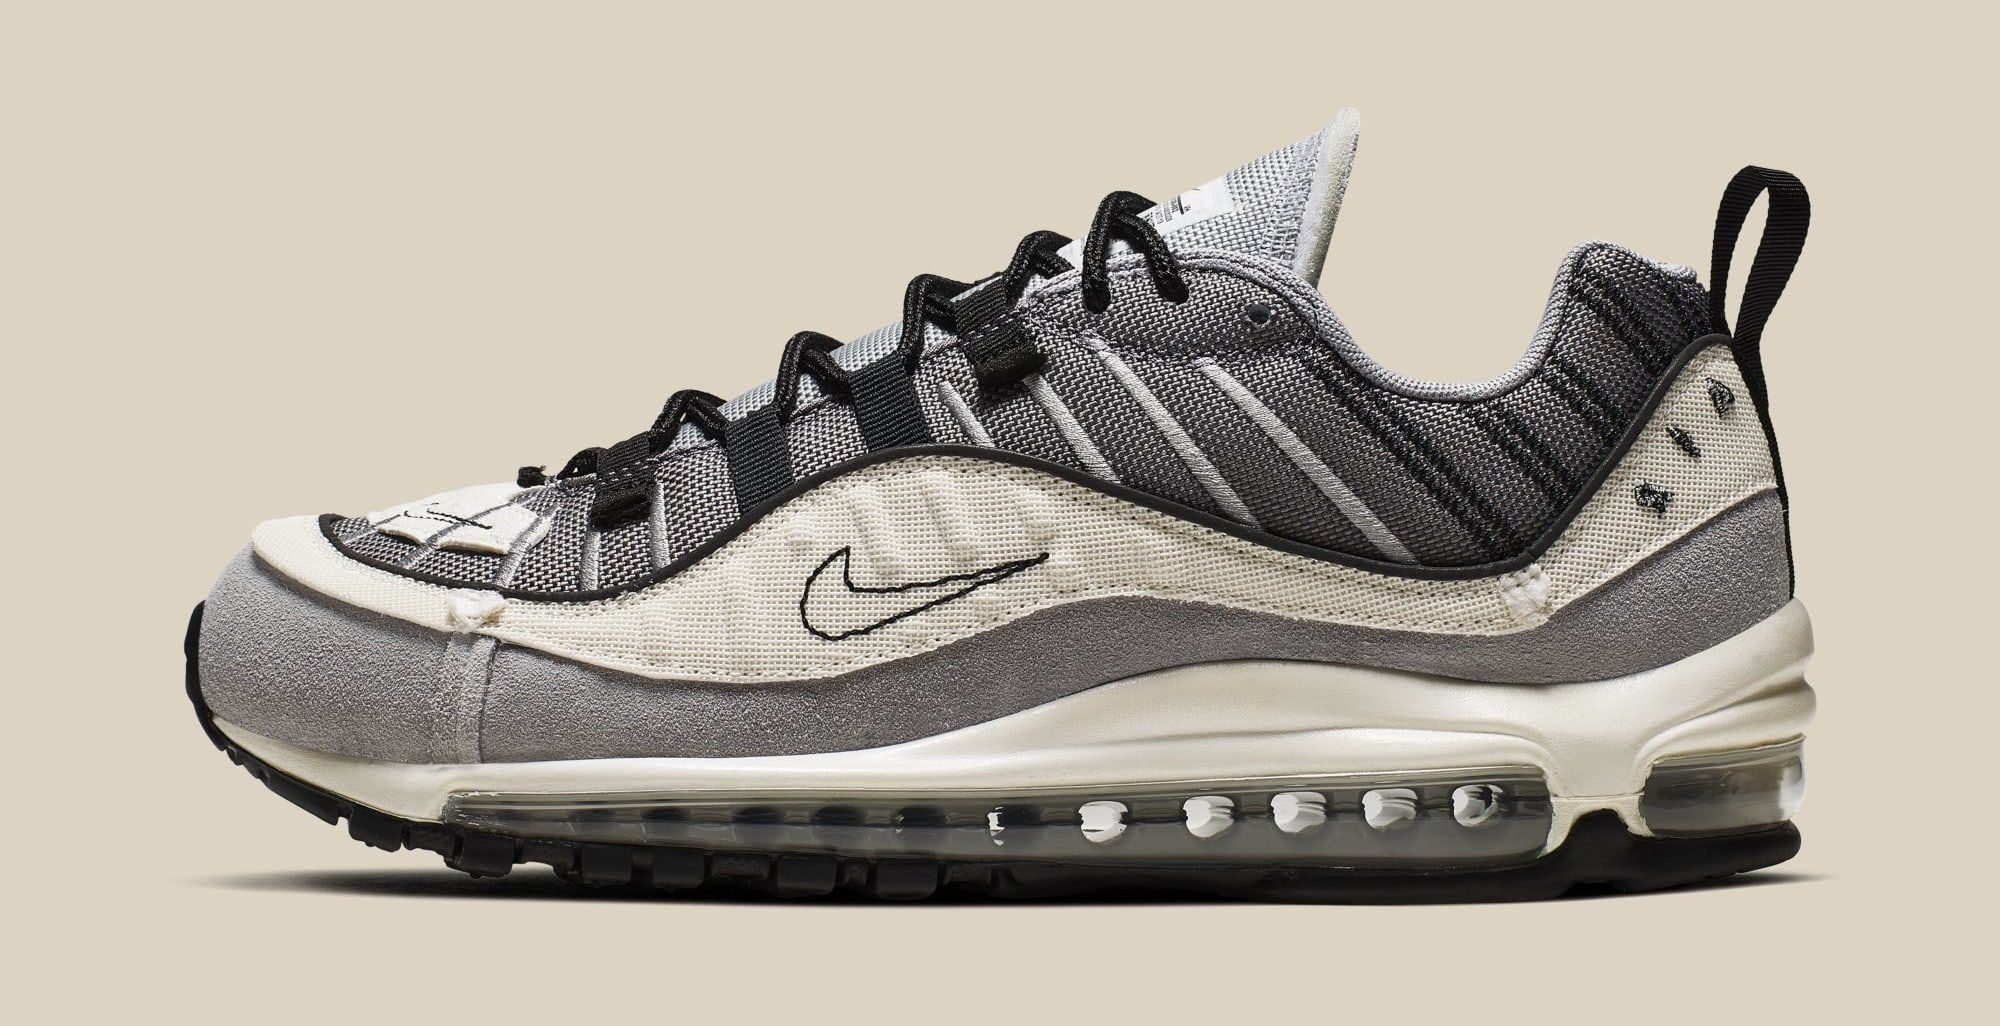 Nike Air Max 98 'Inside Out' AO9380-002 (Lateral)